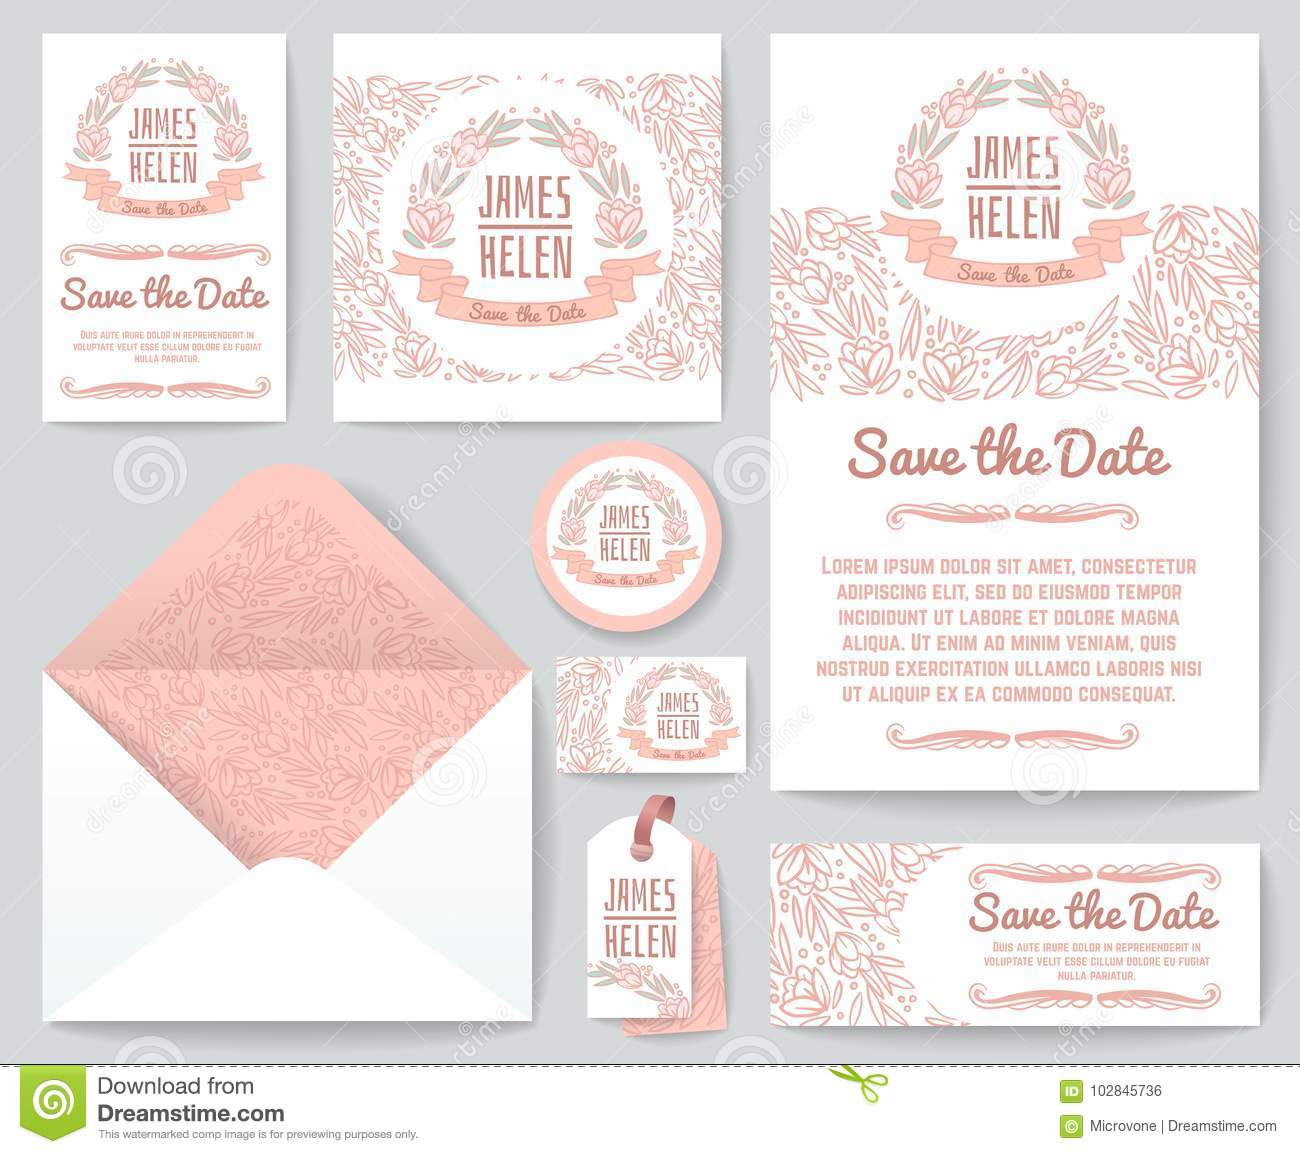 Vintage Wedding Invitation Greeting Cards Vector Template With Hand